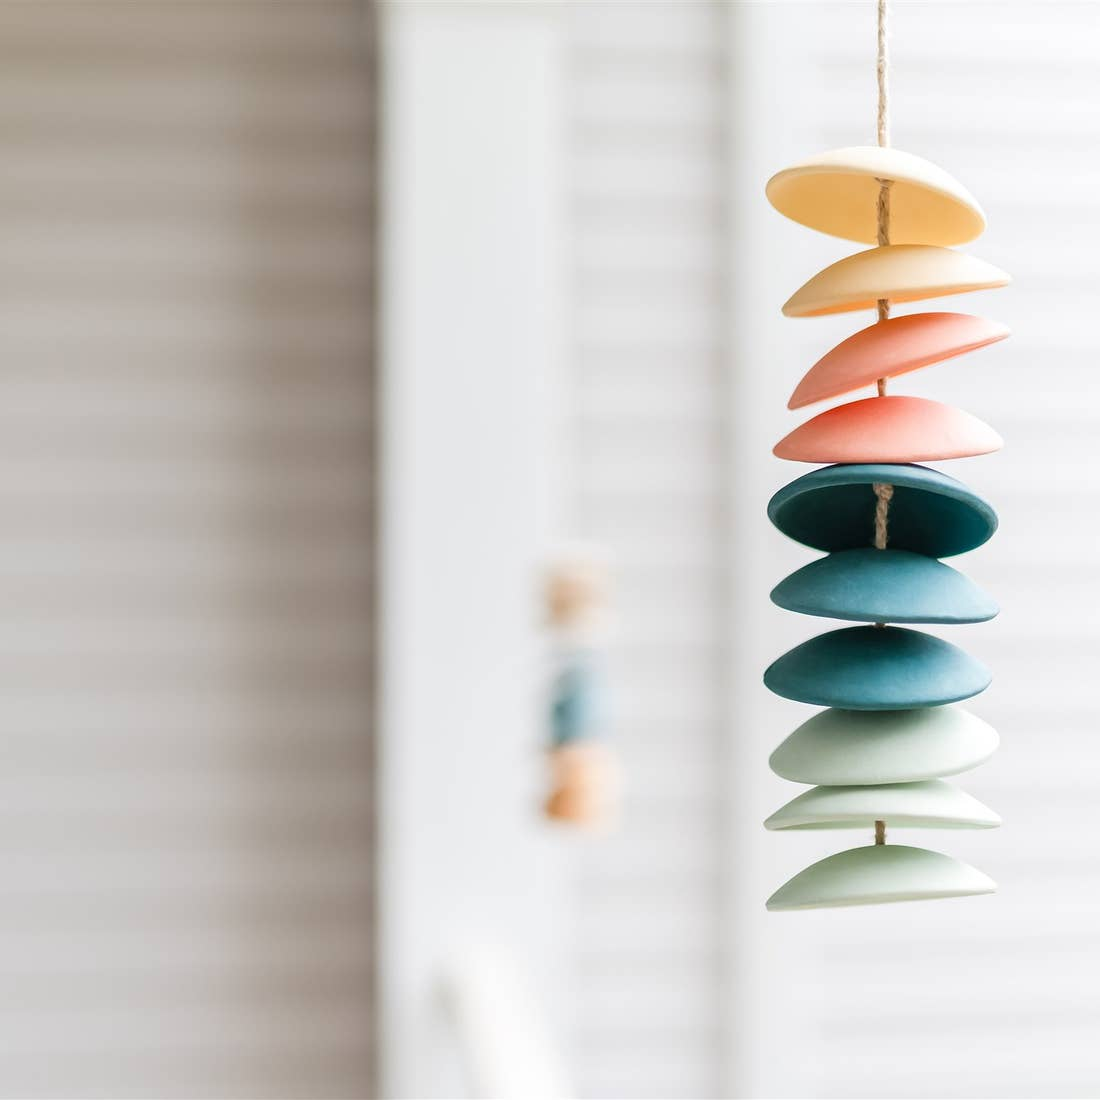 Ceramic Chimes in Cool/Warm Gradient